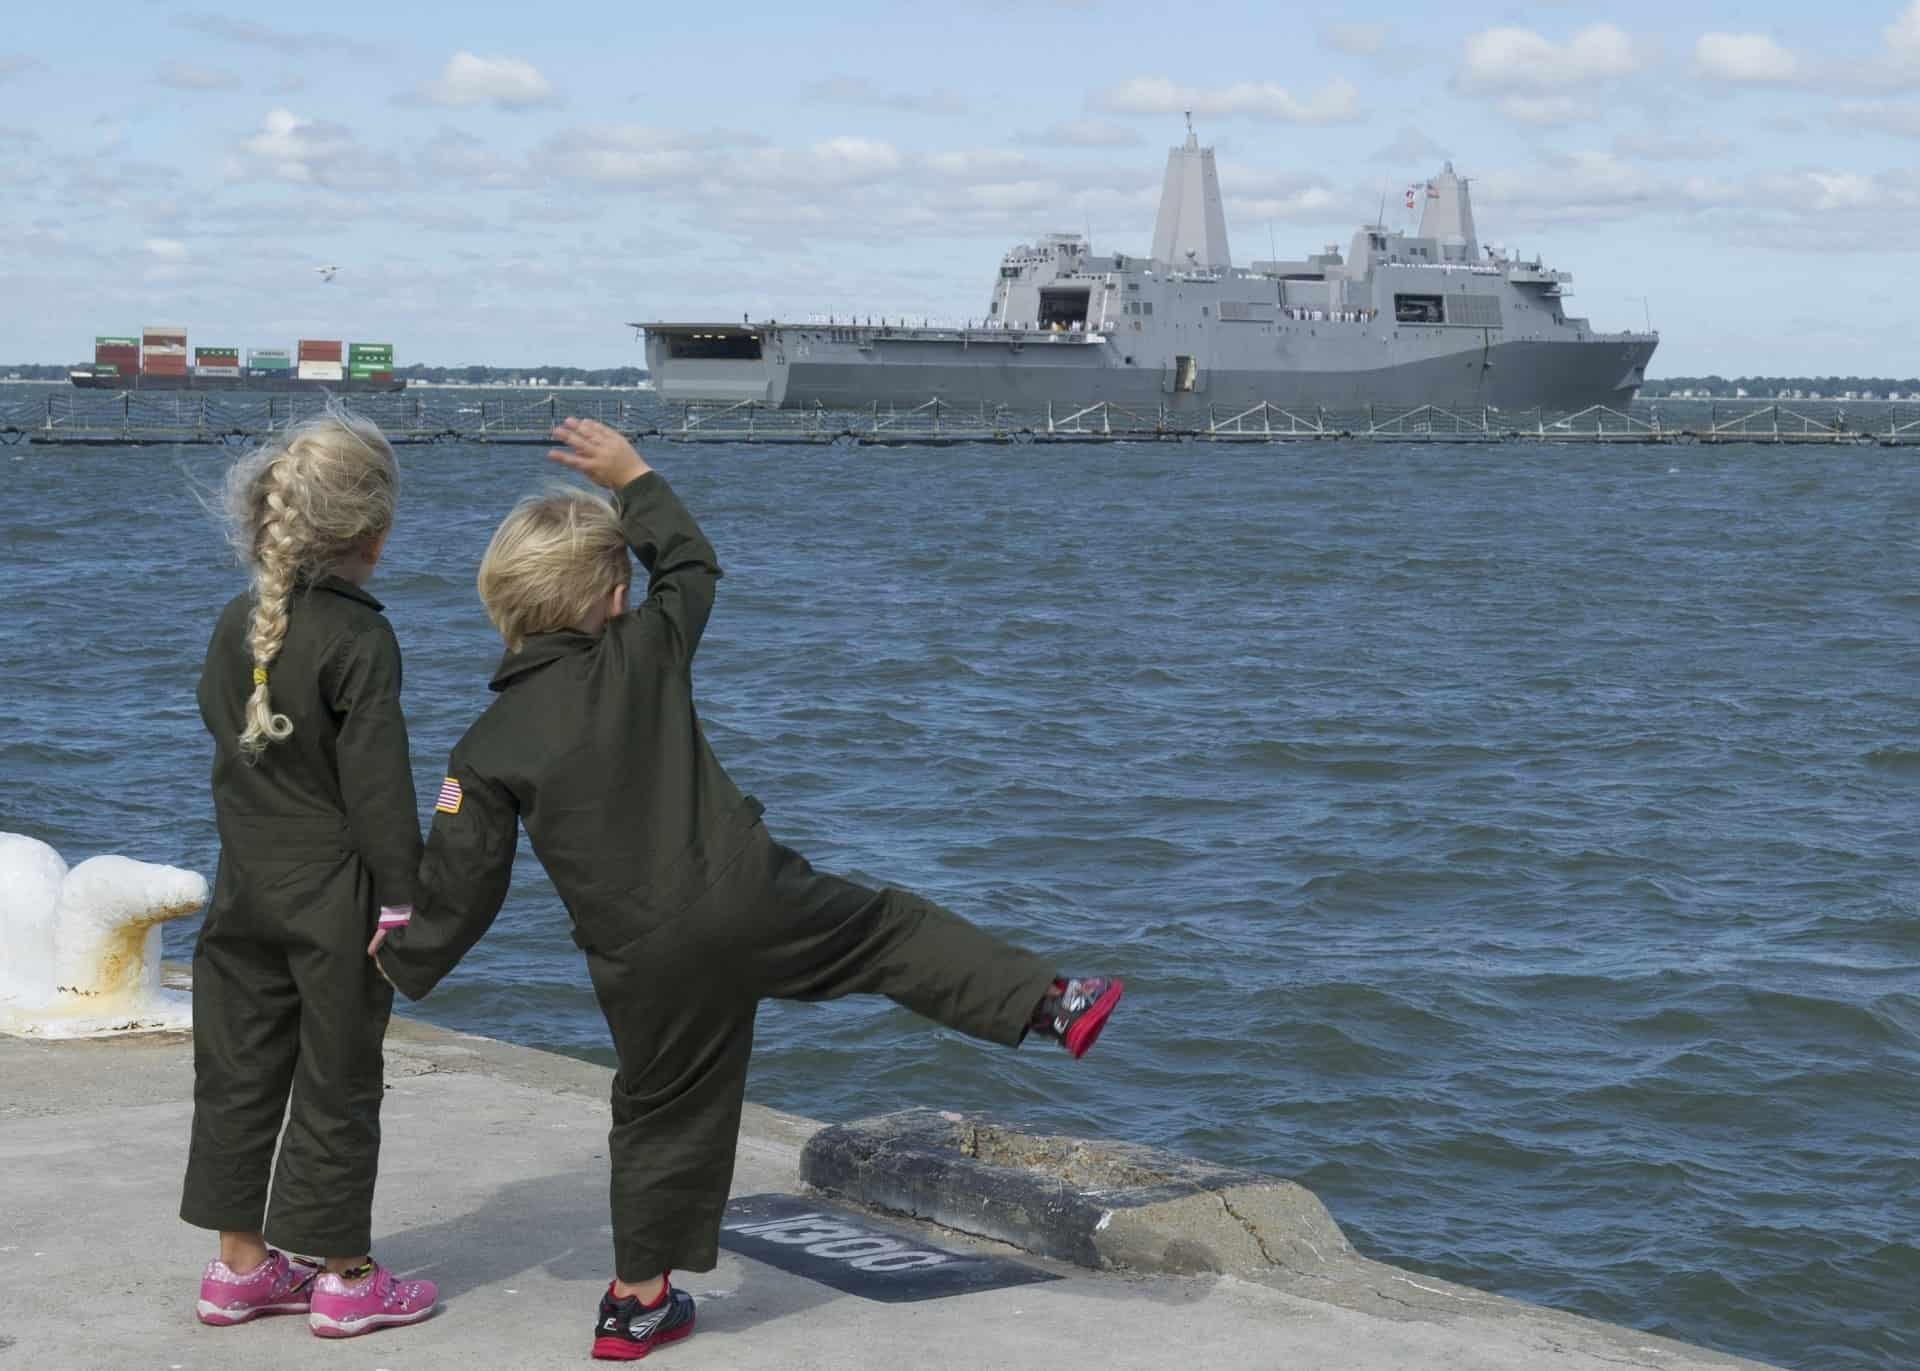 Children Waving to Ship